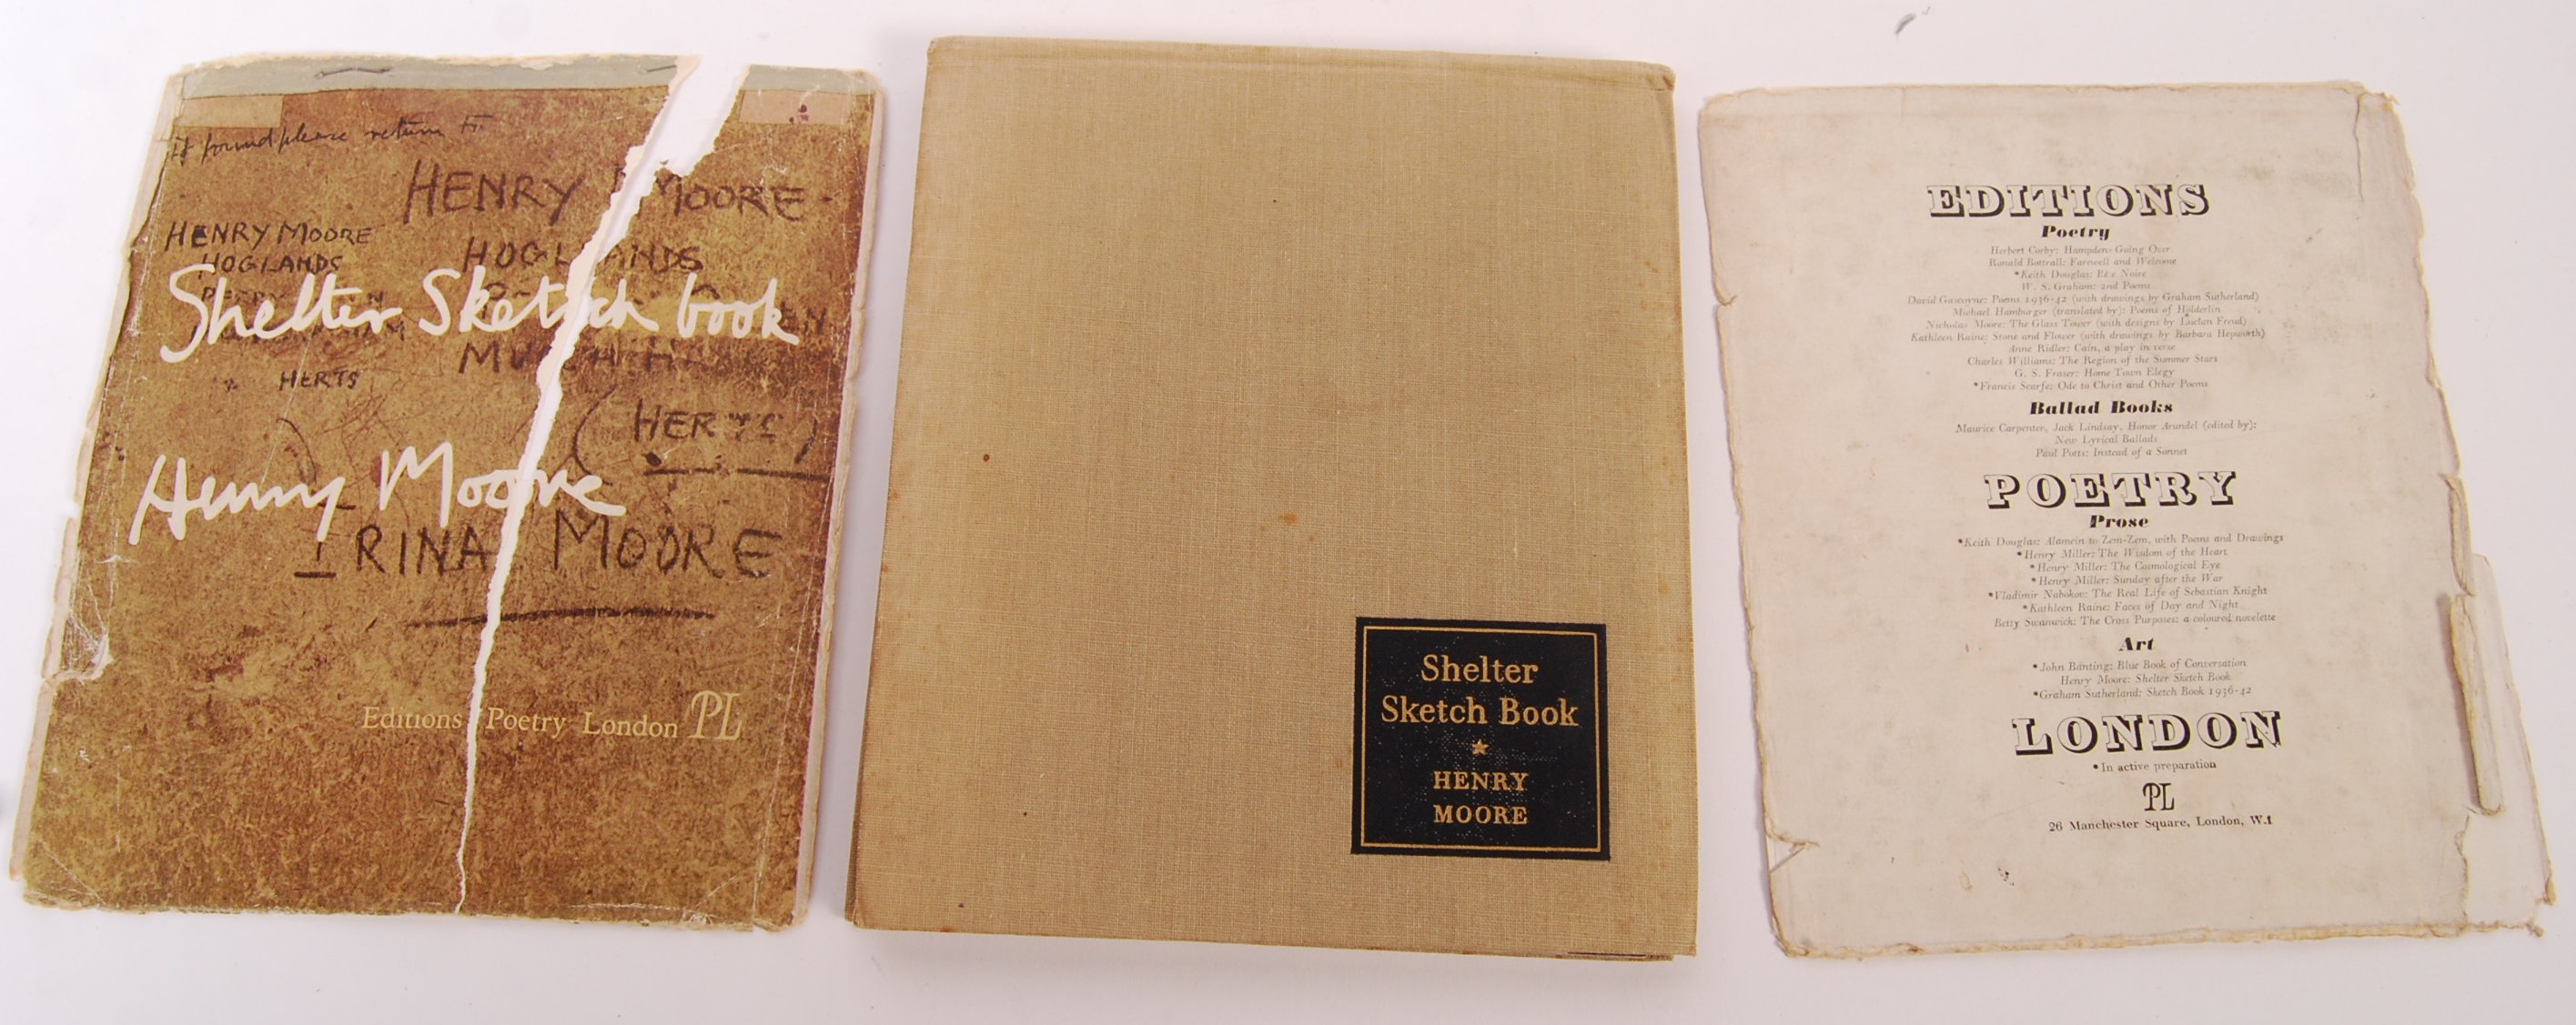 HENRY MOORE WWII SECOND WORLD WAR SHELTER SKETCH BOOK - Image 8 of 8